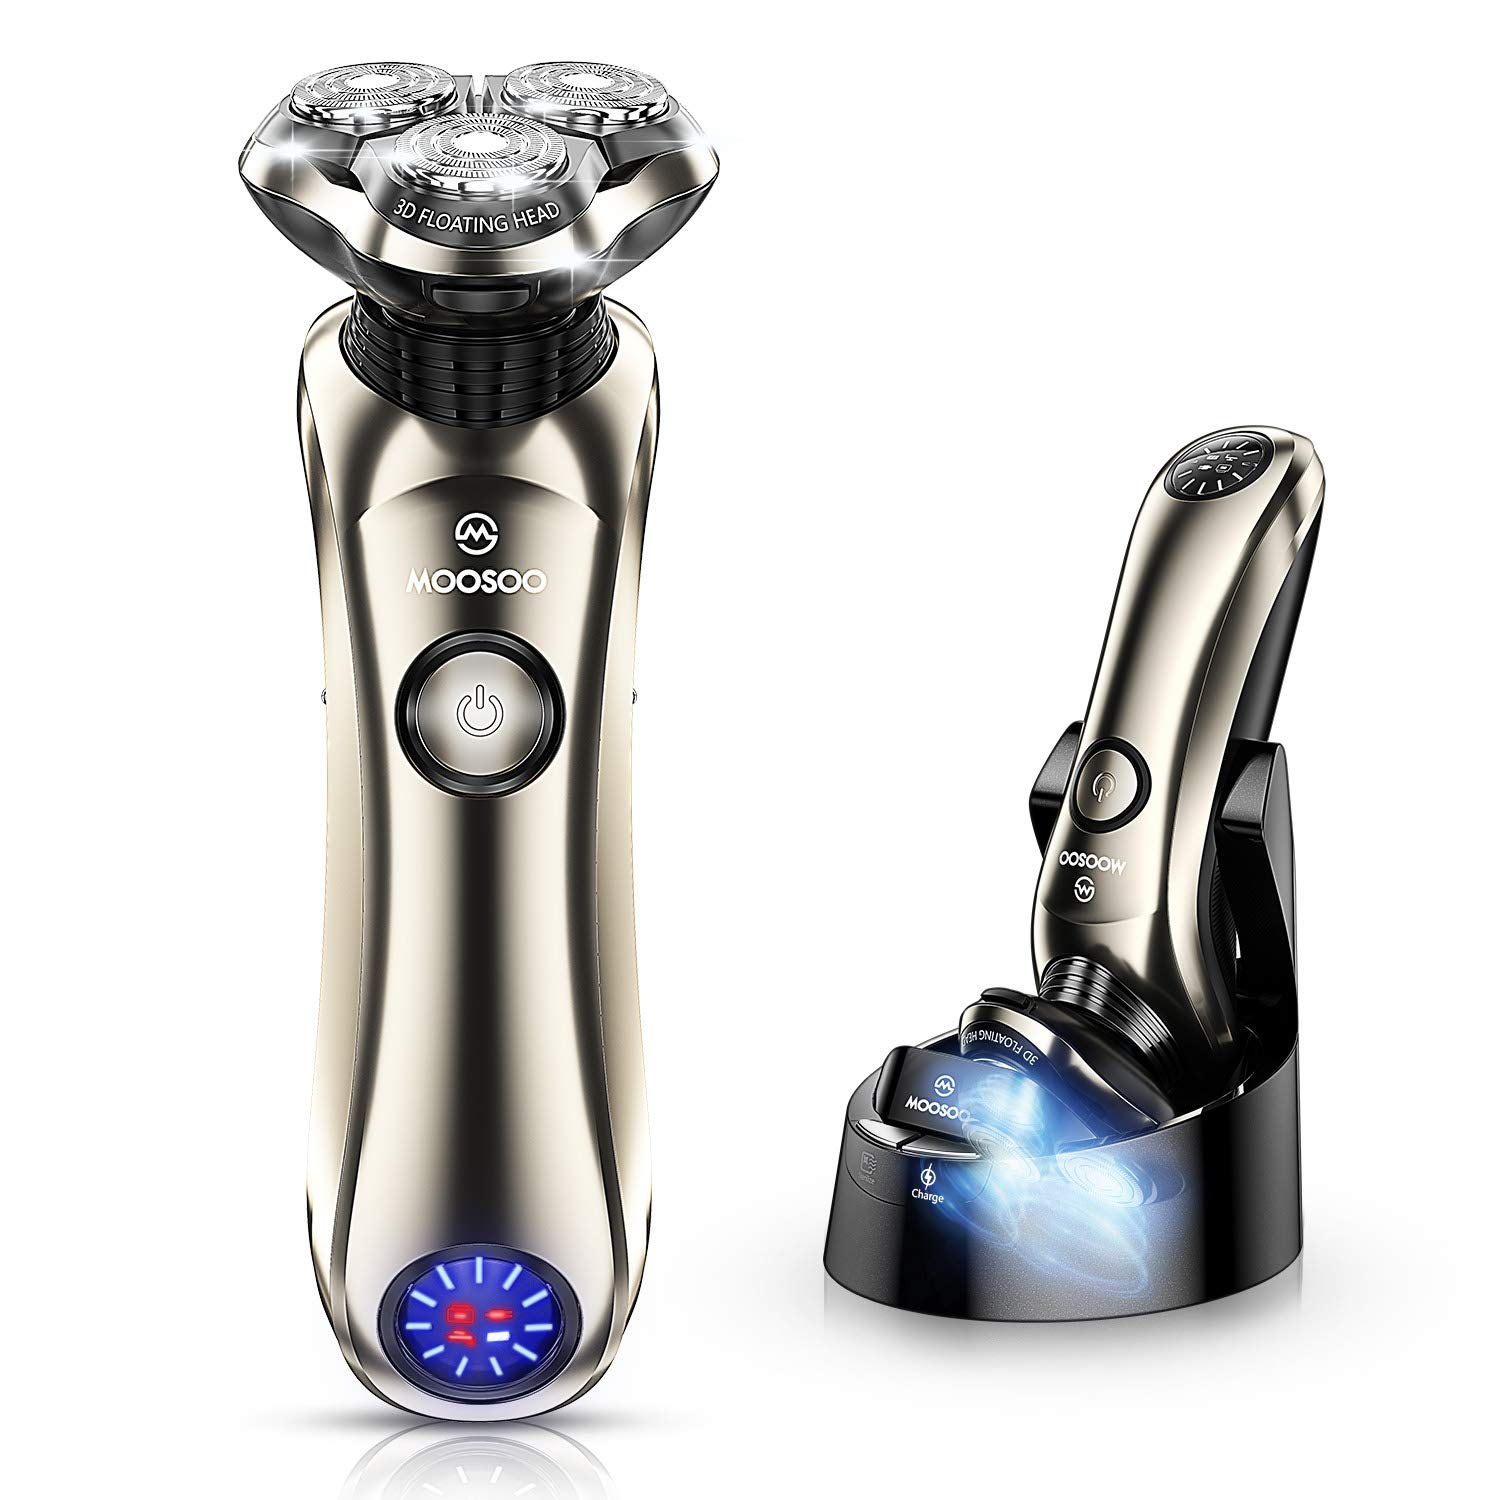 Shaver, MOOSOO Electric Razor with Sterilization Clean Charge Station, Rechargeable Wet/Dry Electric Shaver with Pop-up Trimmer, 100% Waterproof, 5 Mins Fast Charging Technology, LED Display, 100-240V